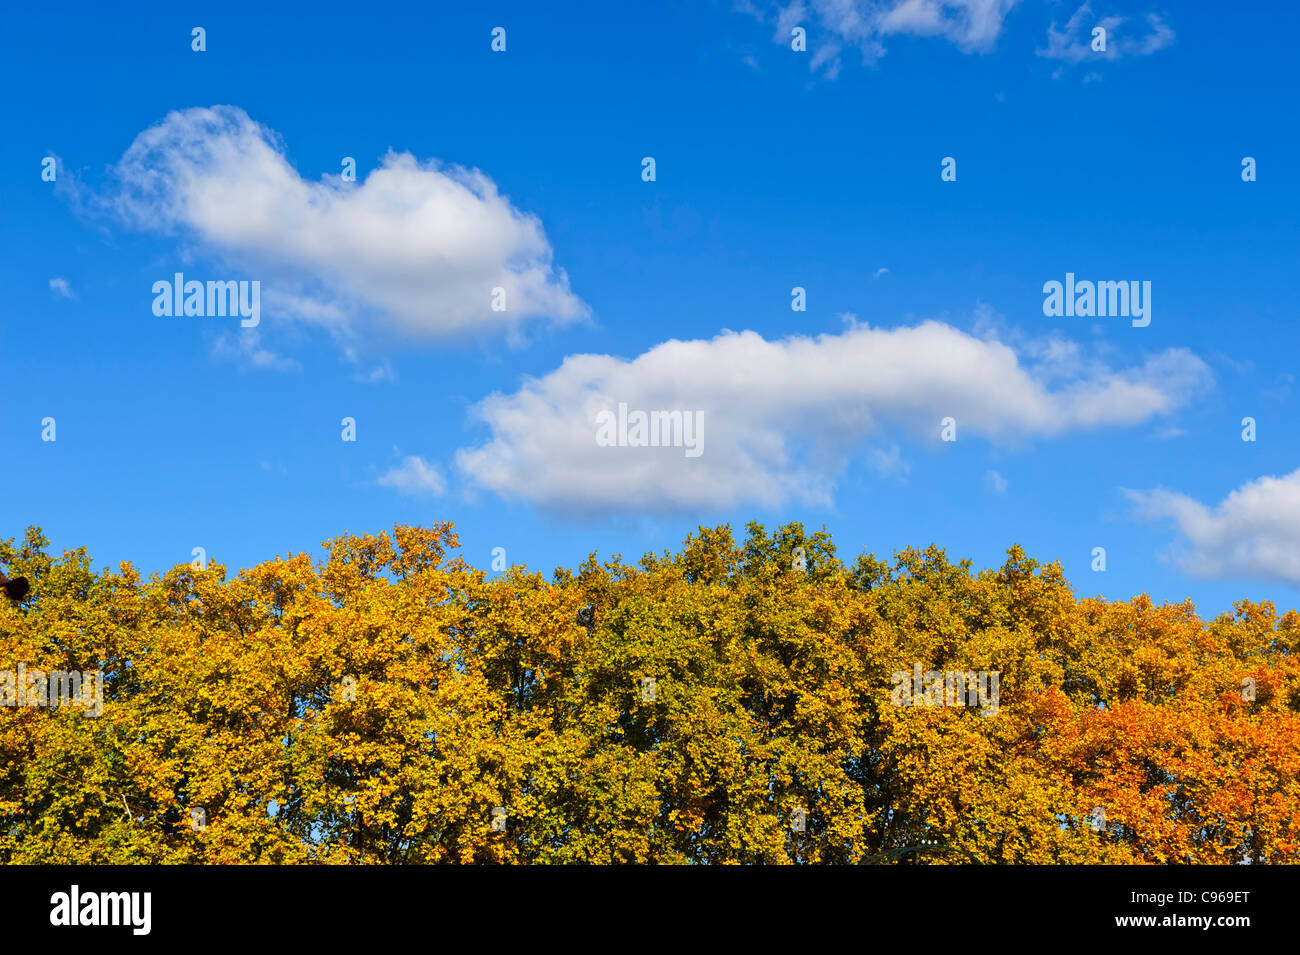 Autumn trees and blue sky with clouds - Stock Image